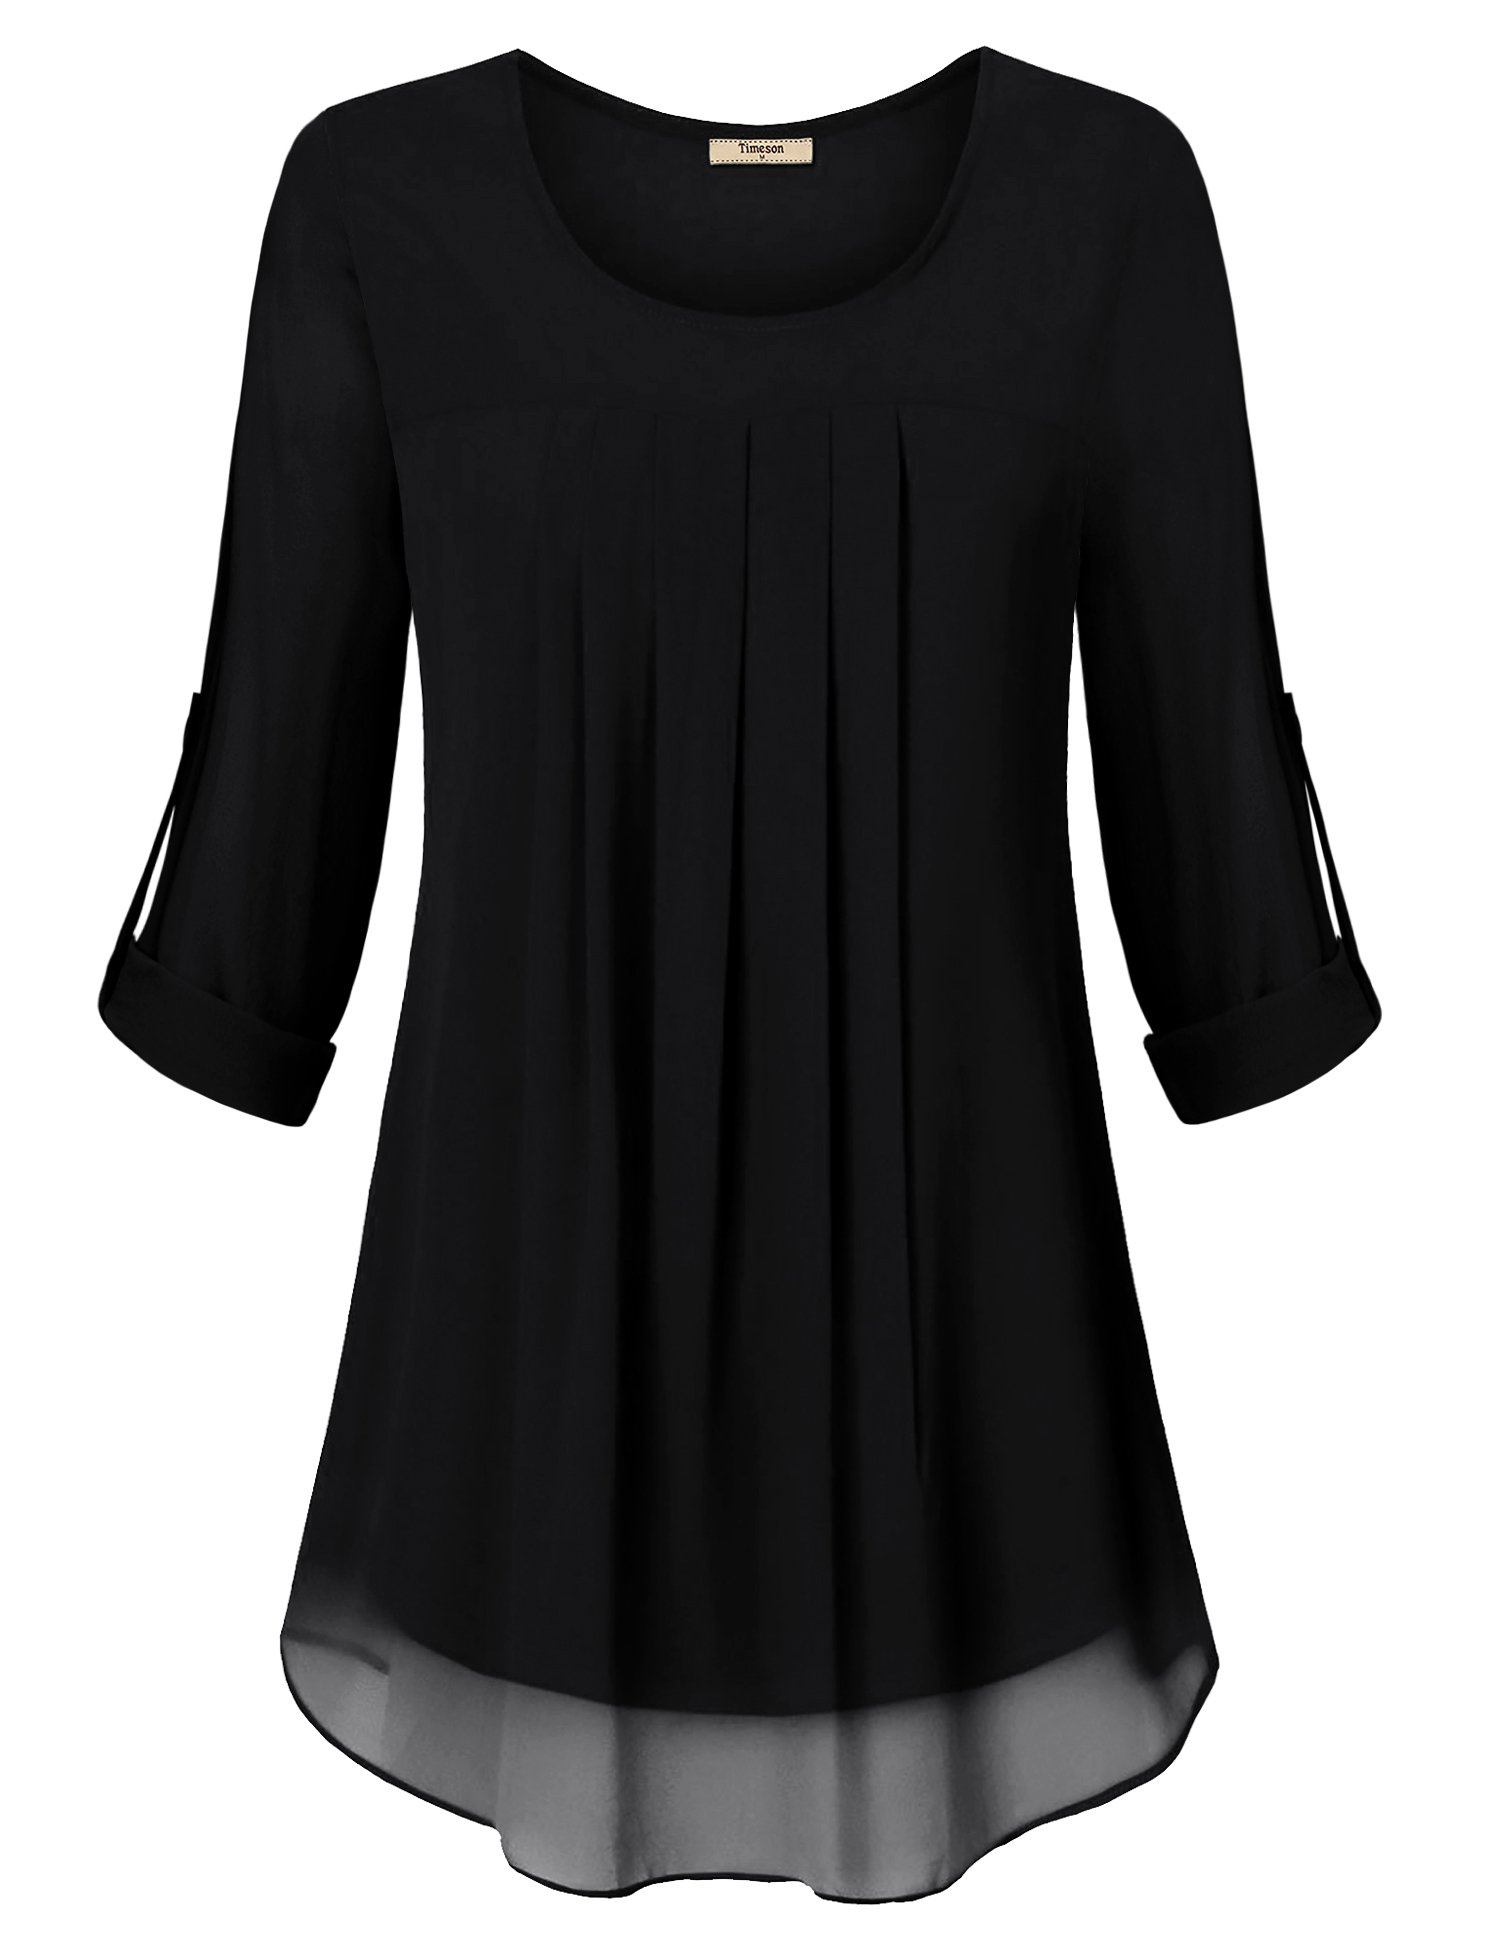 Timeson Womens Tops, Ladies Flowy Tunic Shirt Elegant Round Neck Pleated Front Chiffon Blouses Tops Stretchable Soft Lining Not See Through Swing Tunic Black Small